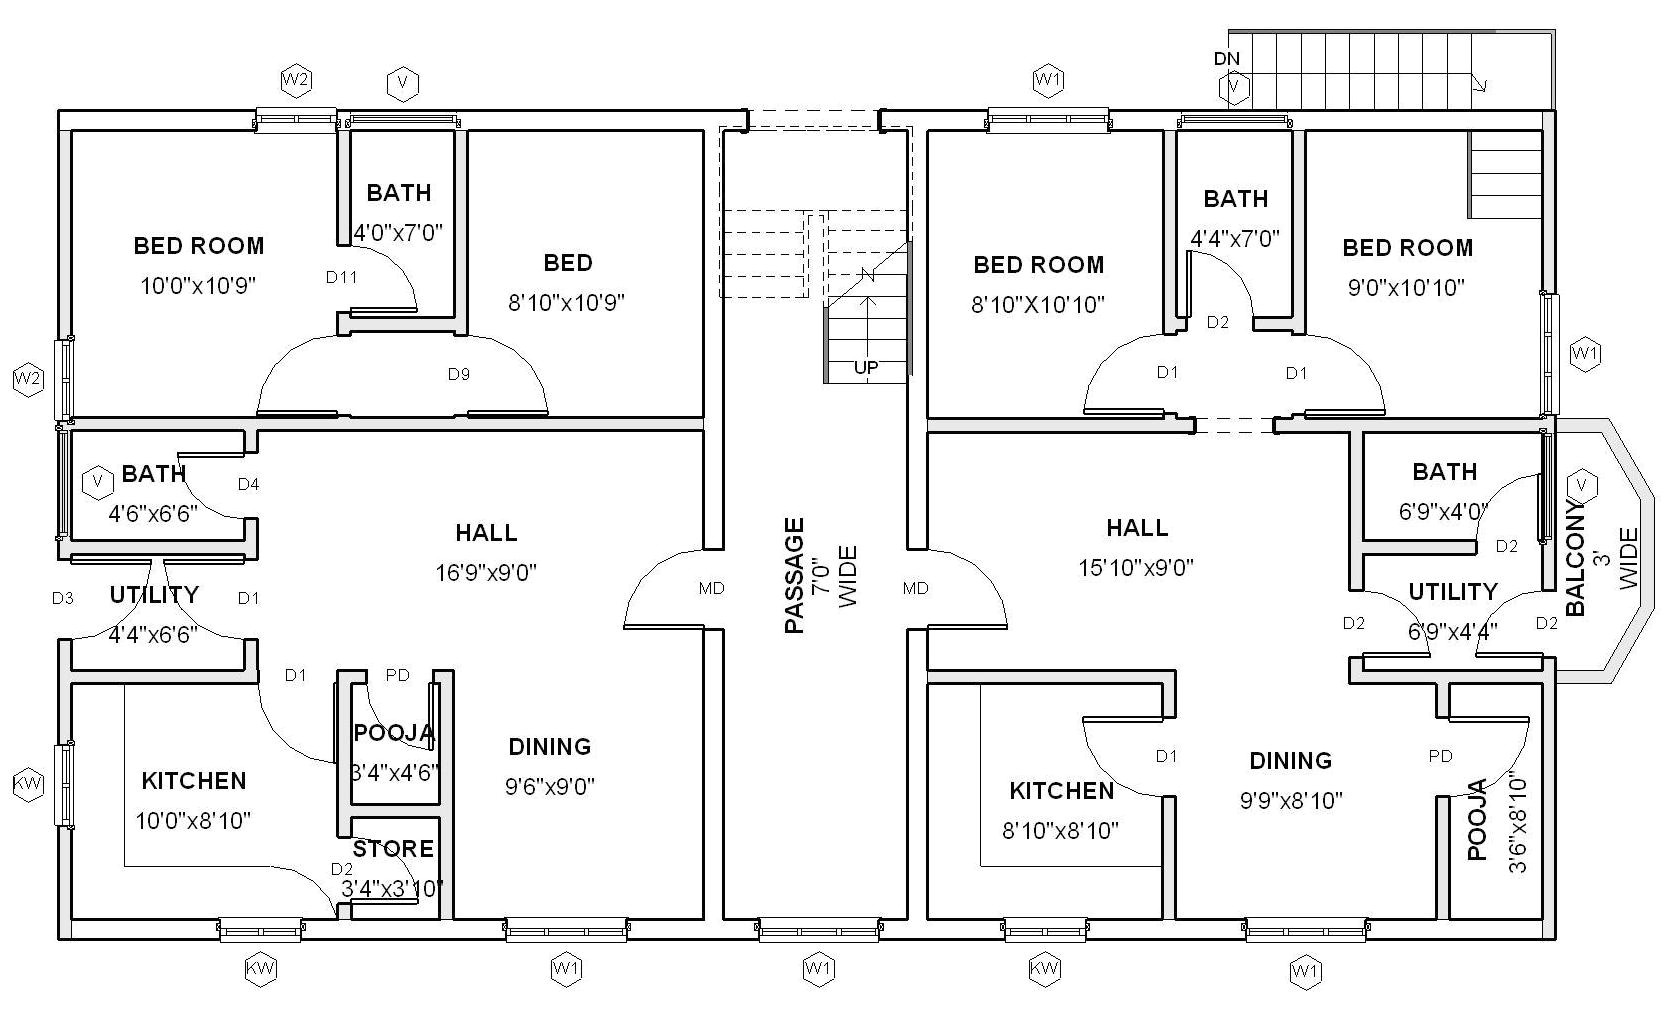 free house plans as per vastu shastra